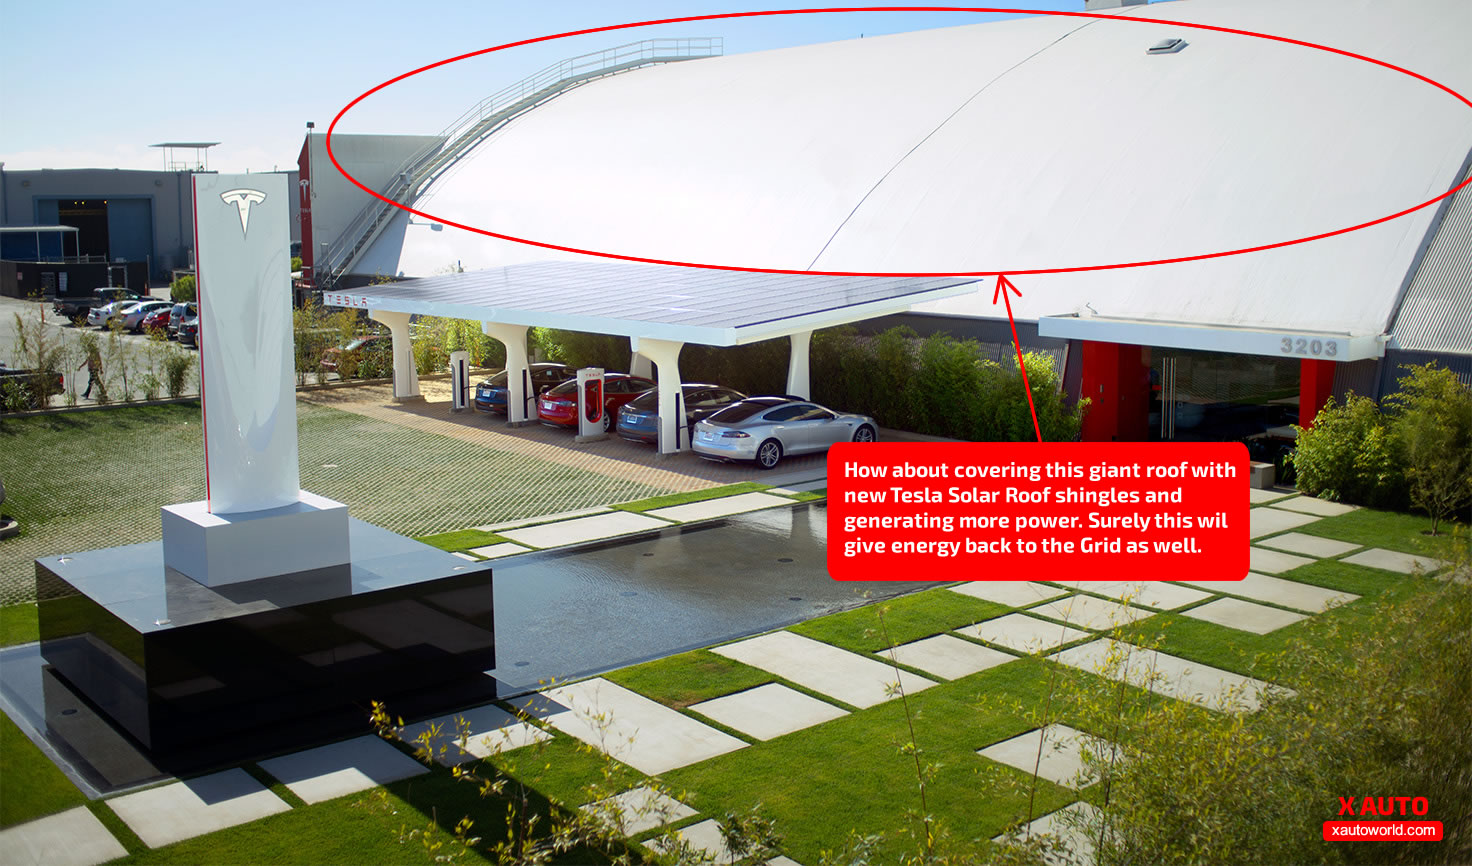 Idea: Hawthorne, CA Supercharger V3 station and the likes can generate more with Tesla's Solar Roof